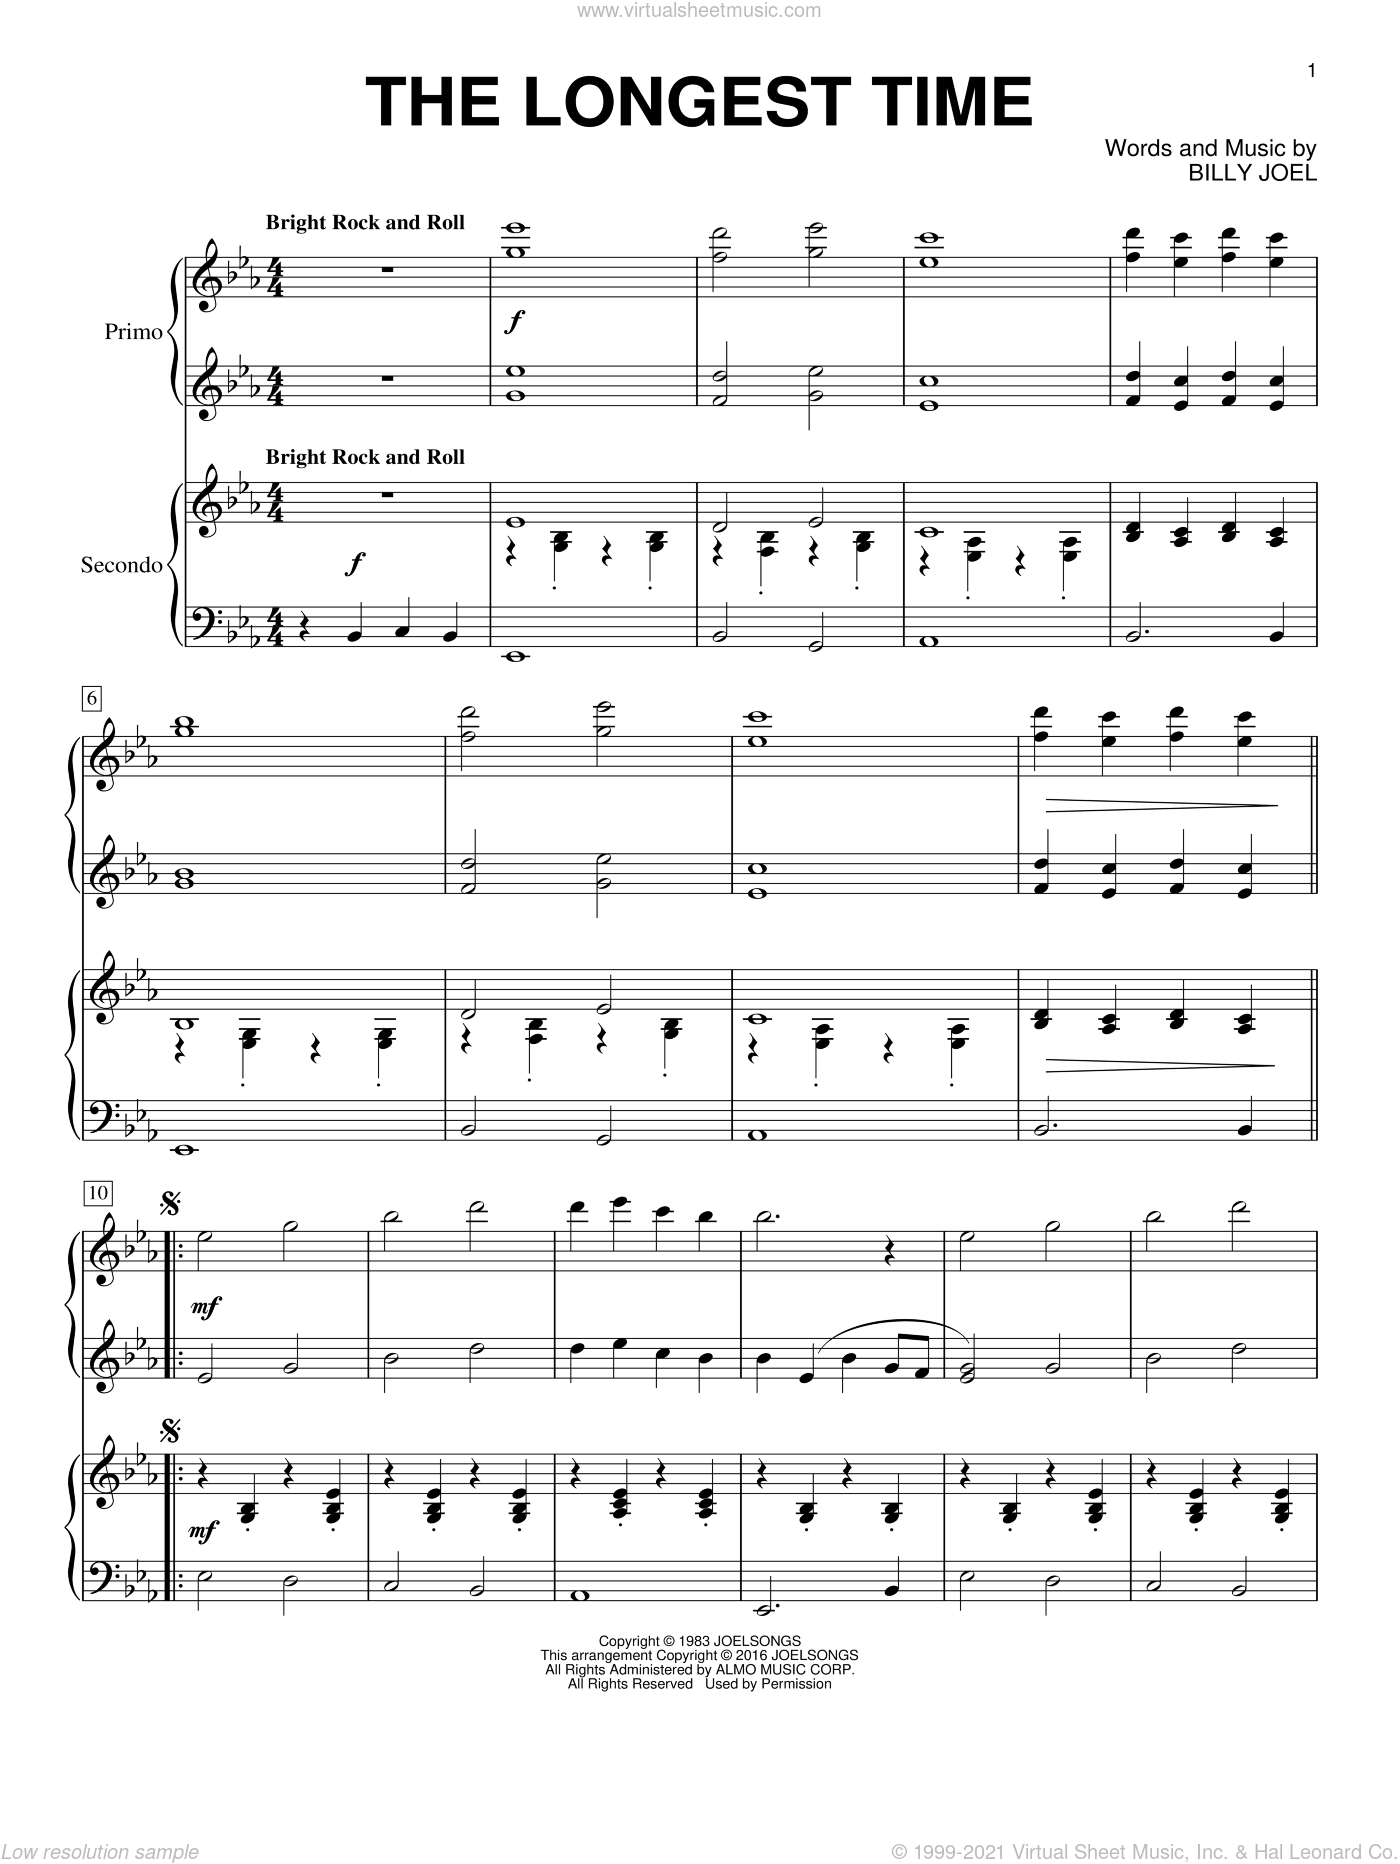 The Longest Time sheet music for piano four hands by Billy Joel, intermediate skill level